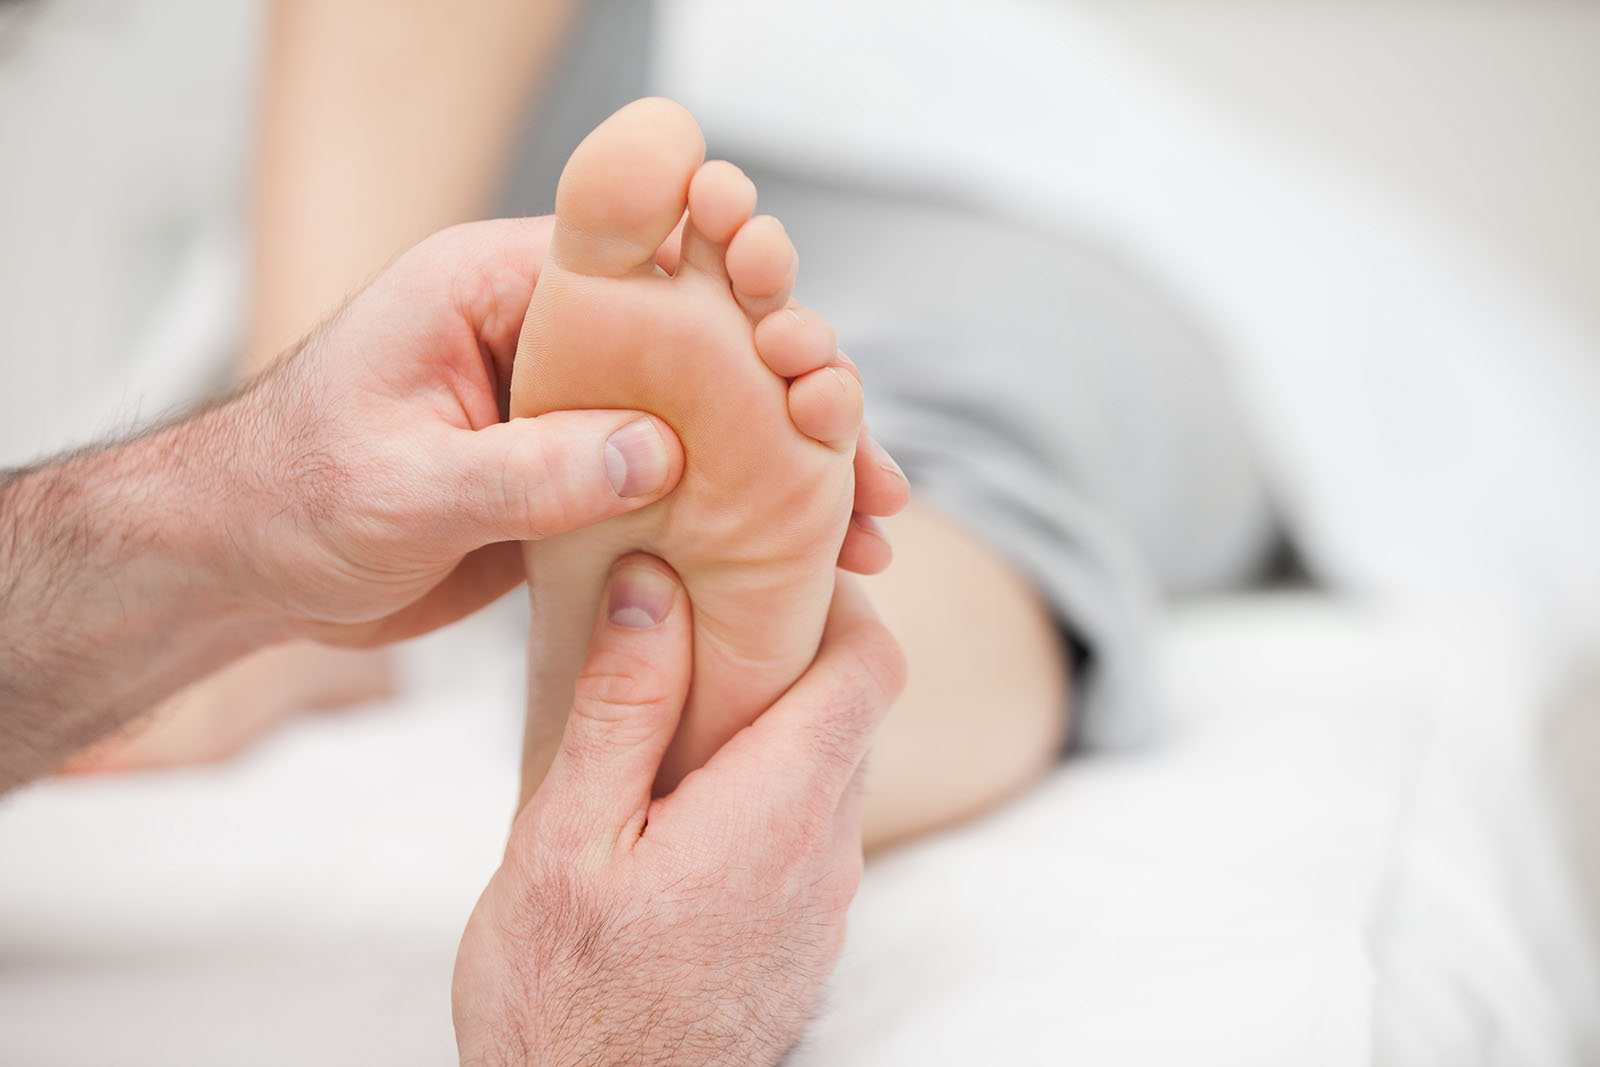 Patient receiving a foot massage in a room